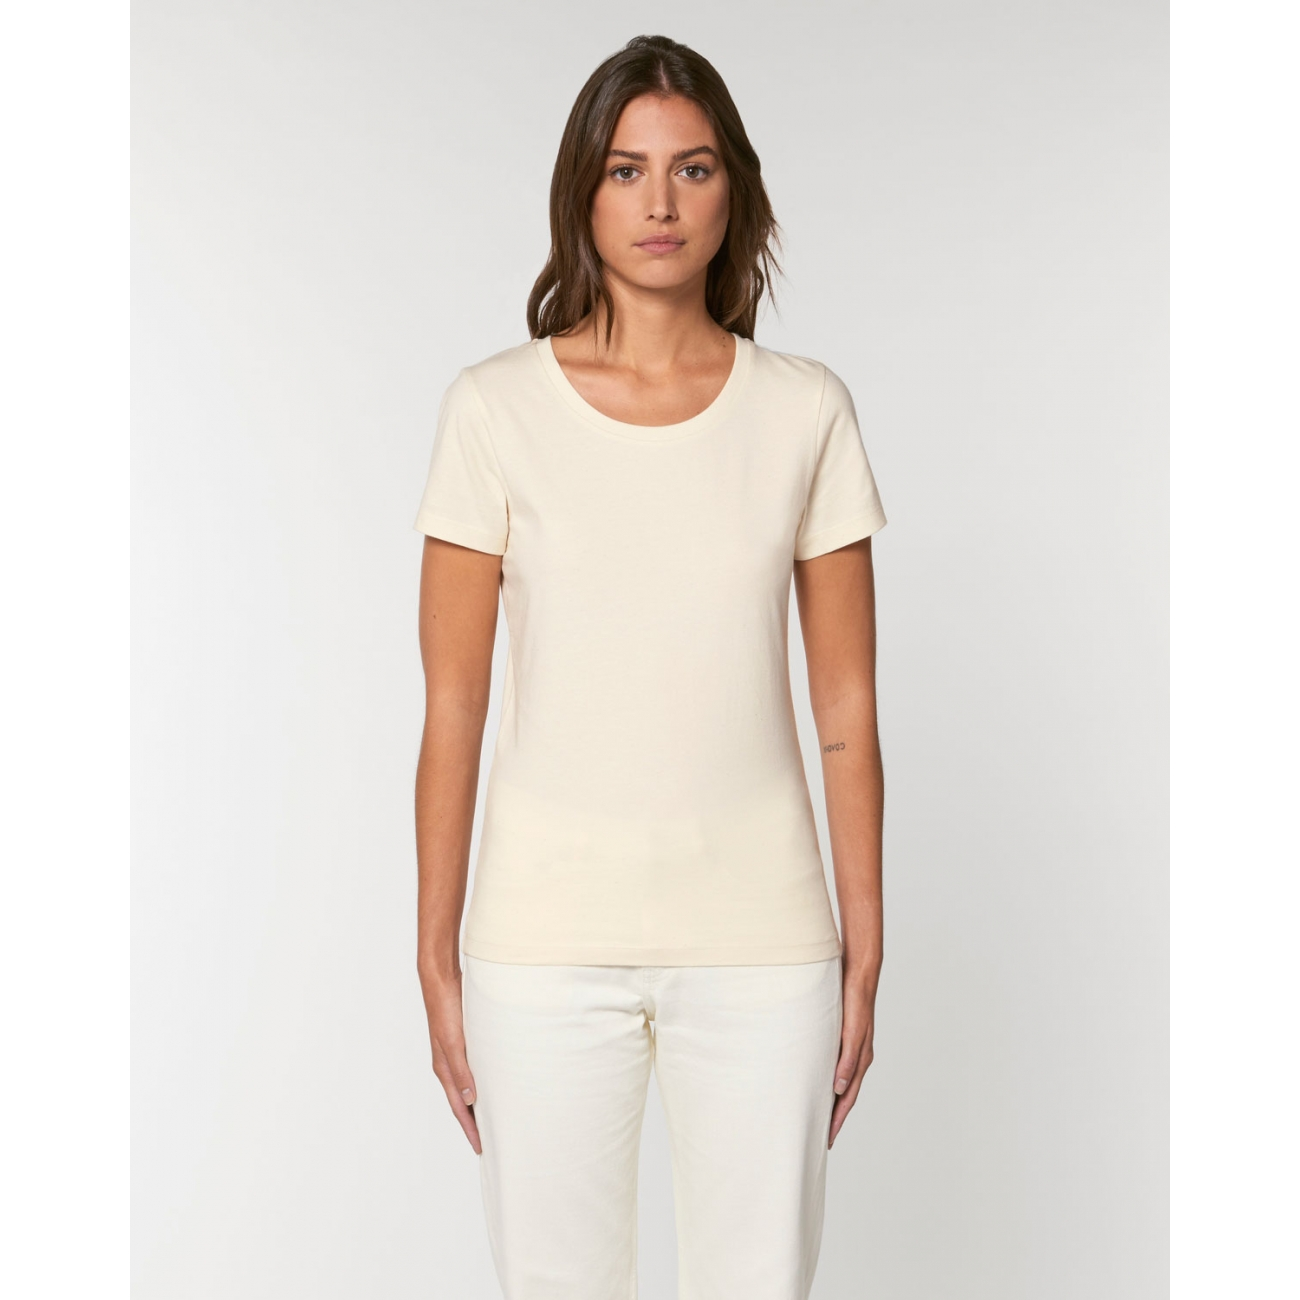 https://tee-shirt-bio.com/10162-thickbox_default/tee-shirt-femme-coton-bio-coupe-feminine-et-cintree-couleur-coton-naturel-sans-teinture.jpg